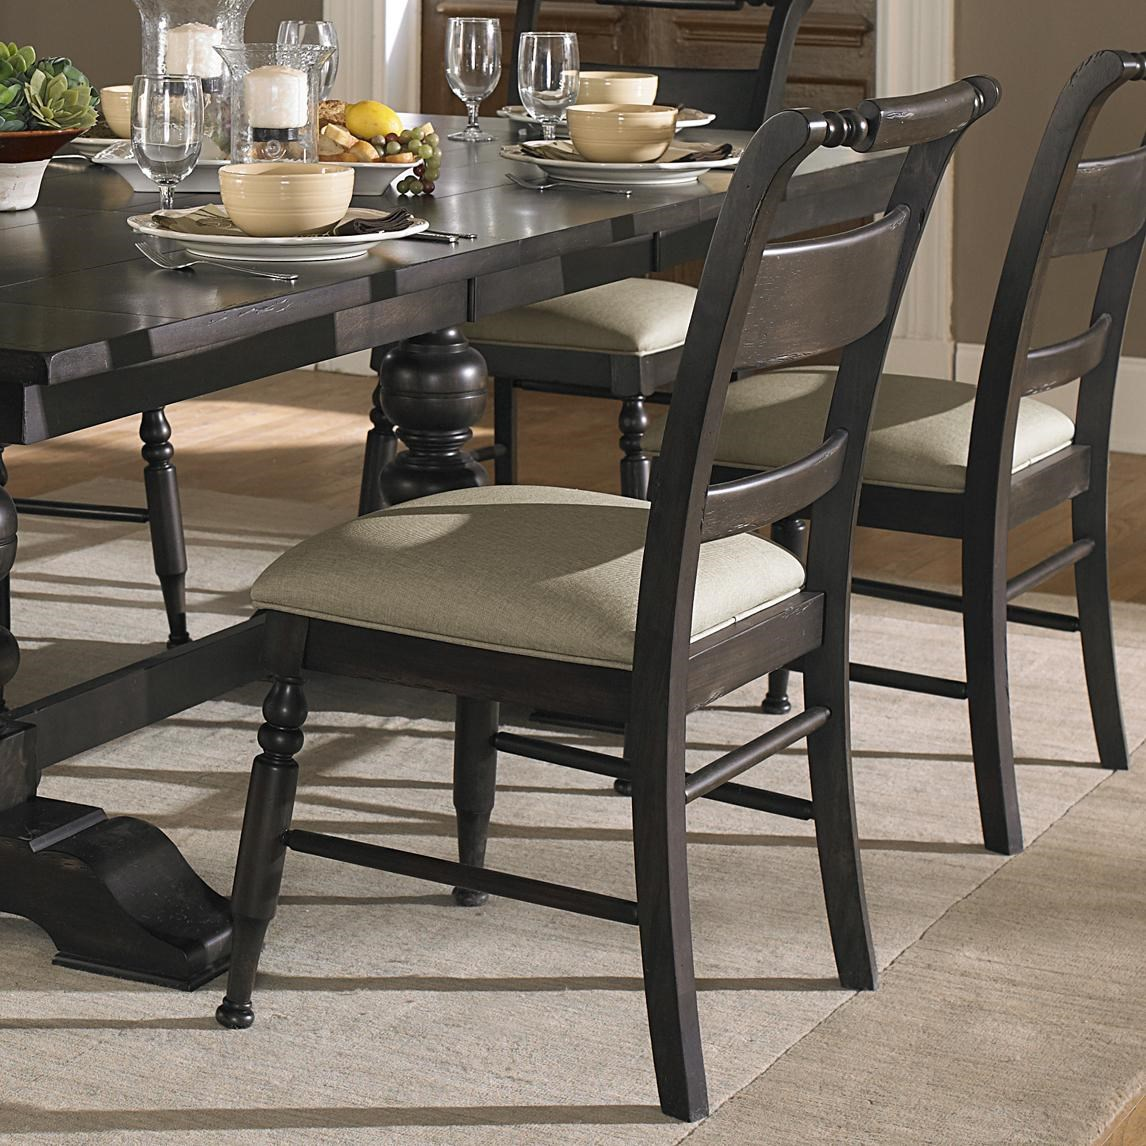 Trestle Dining Table Set Part - 40: Liberty Furniture Whitney 7 Piece Trestle Dining Room Table Set